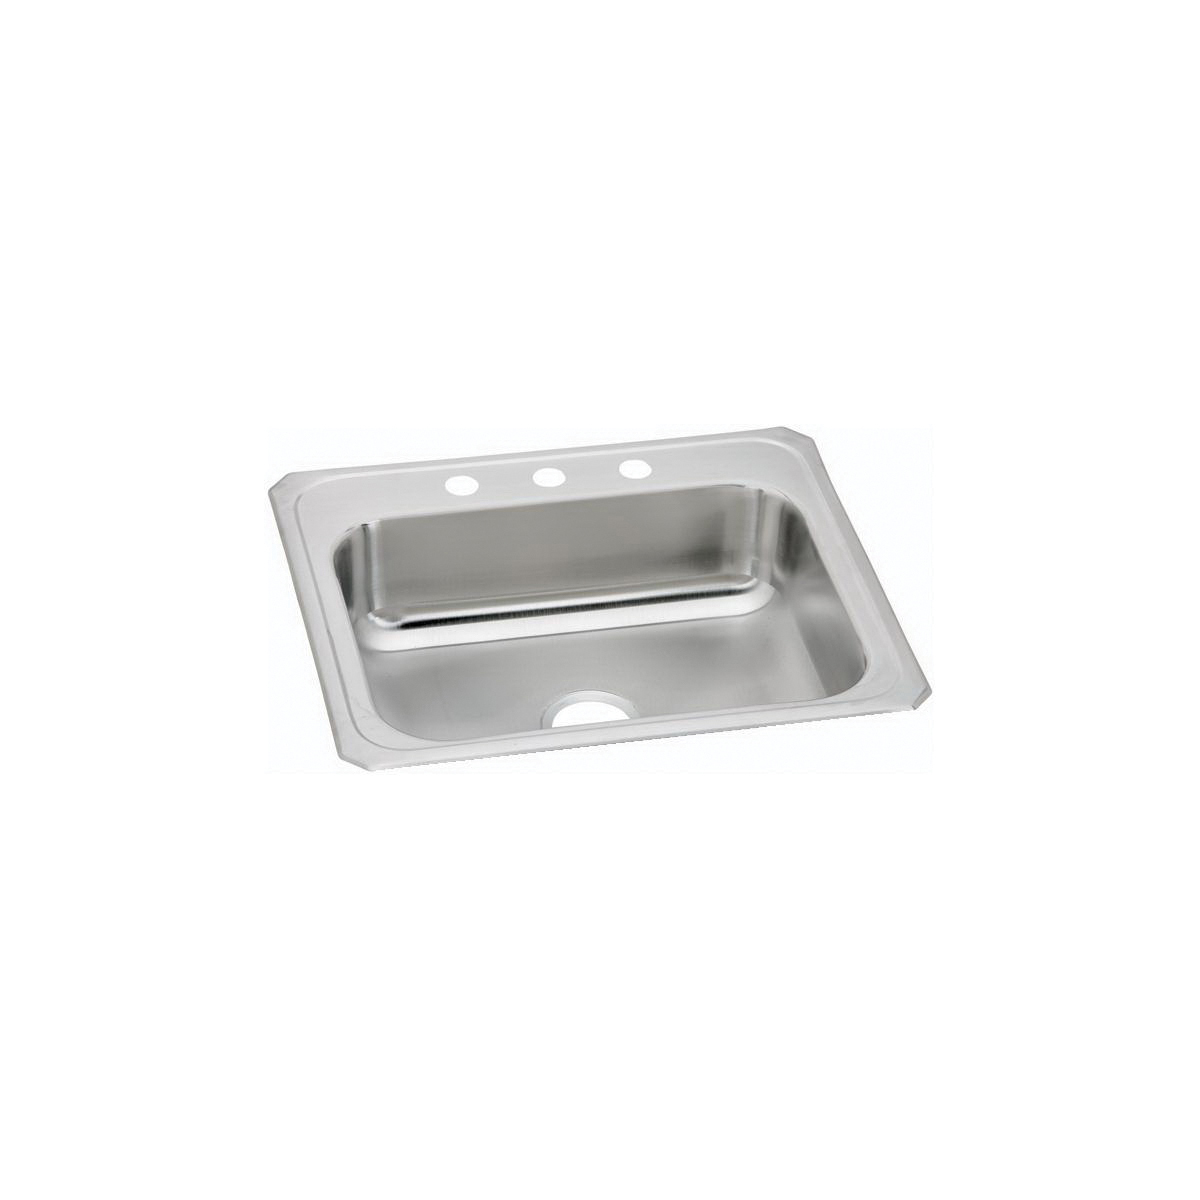 Elkay CR25224 Celebrity Kitchen Sink, Rectangular, 4 Faucet Holes, 25 in W x 22 in D x 7 in H, Top Mount, Stainless Steel, Brushed Satin